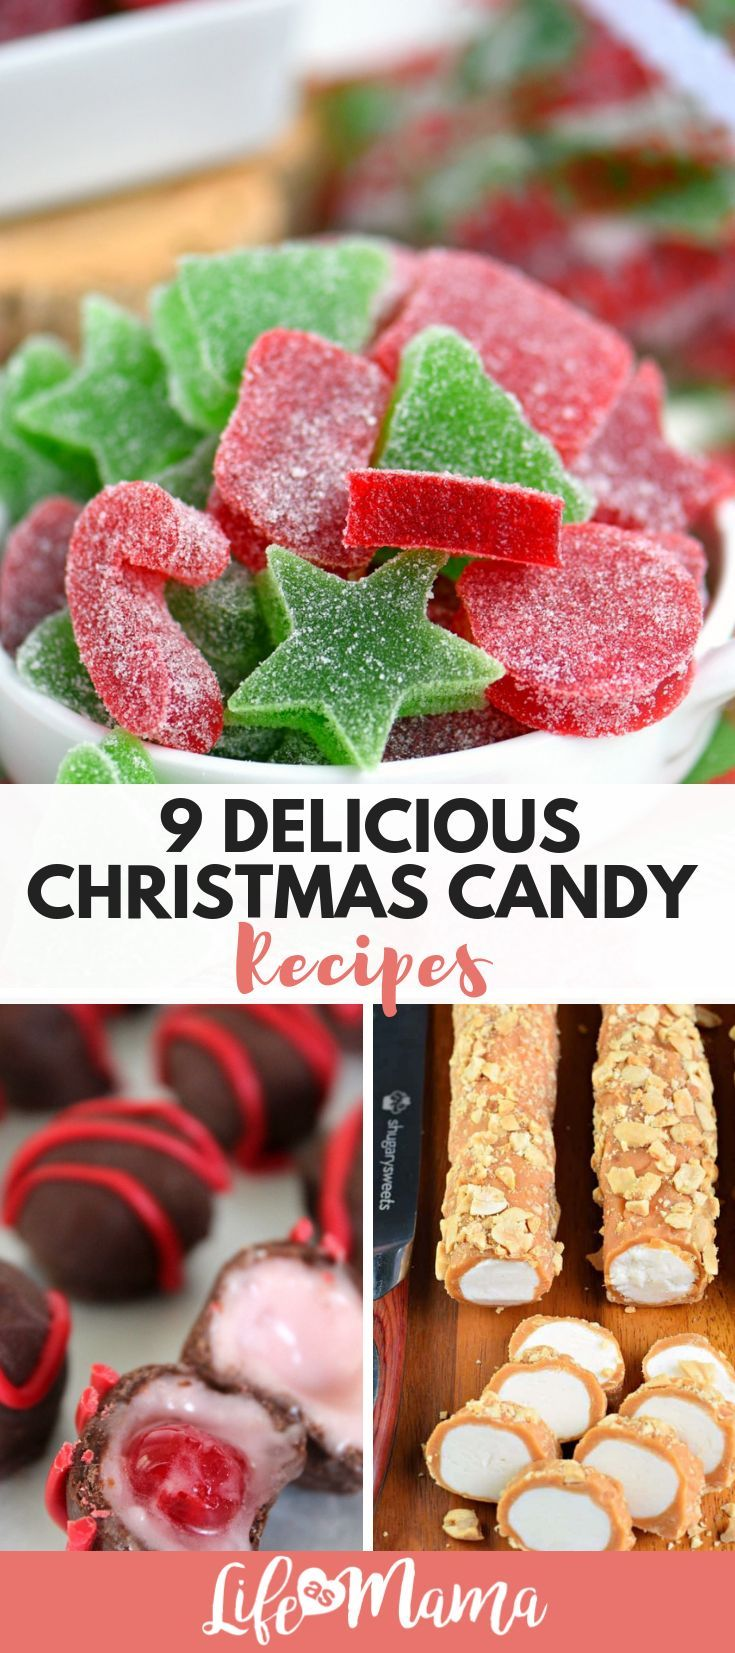 Easy Christmas Candy.9 Delicious Christmas Candy Recipes I Candy Easy